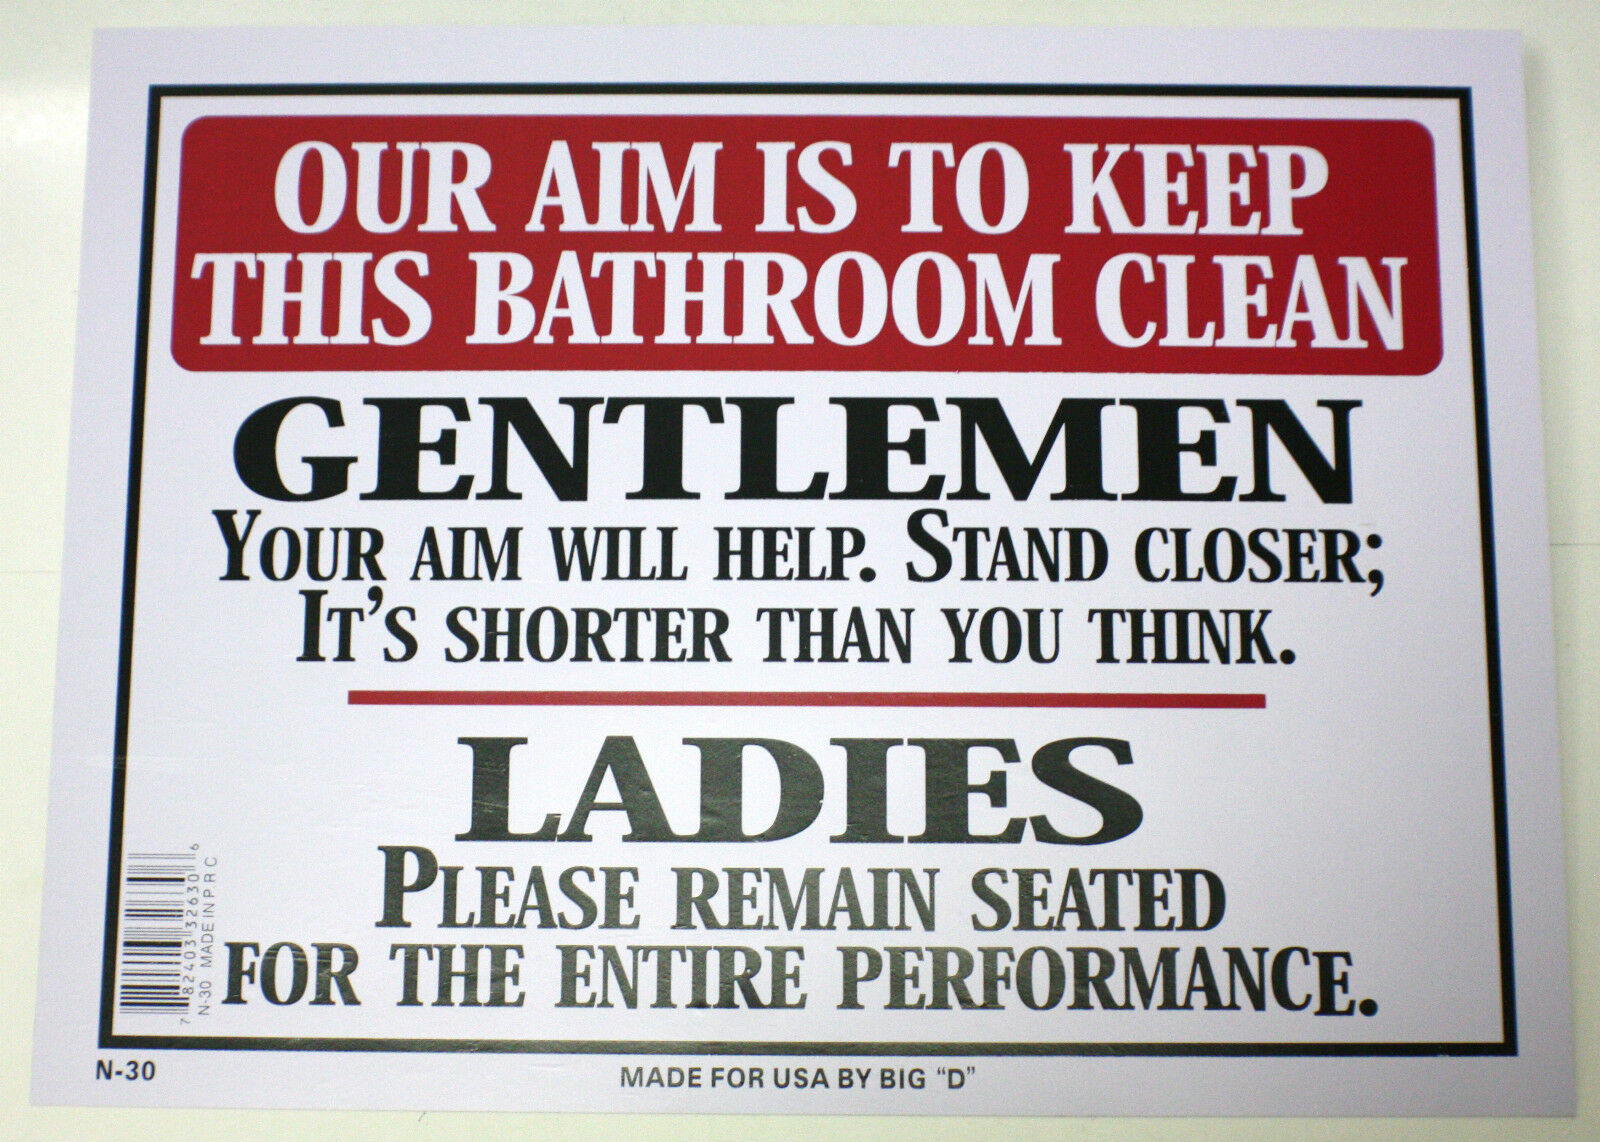 OUR AIM IS TO KEEP BATHROOM CLEAN MEN WOMEN TOILET NOVELTY SIGN 9 X12